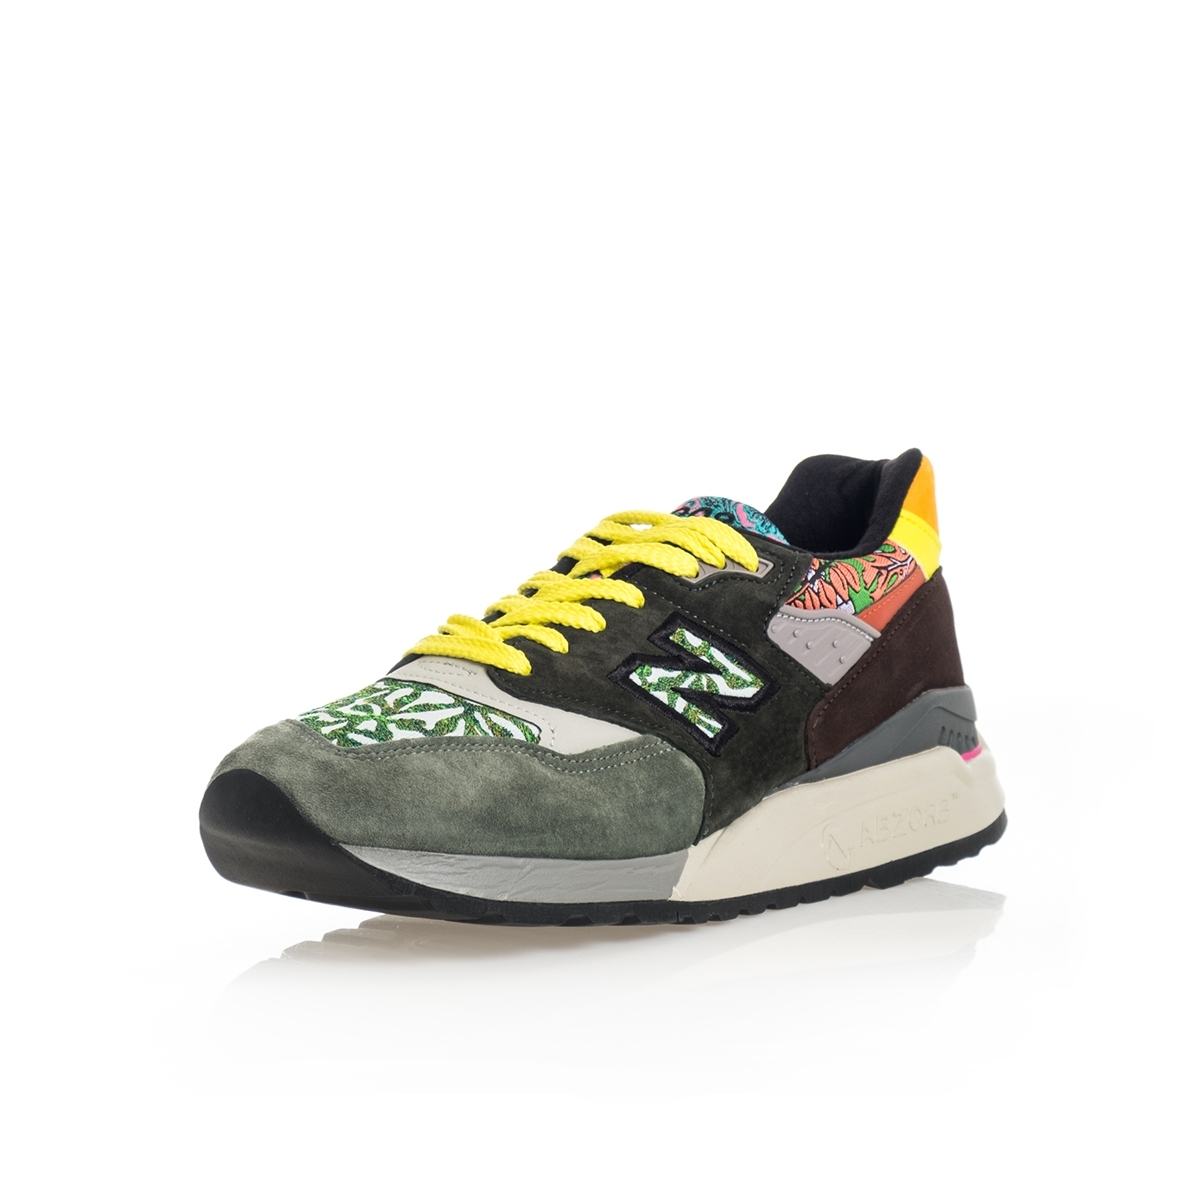 SNEAKERS UOMO NEW BALANCE LIFESTYLE 998 M998AWK MADE IN USA GREEN image 2